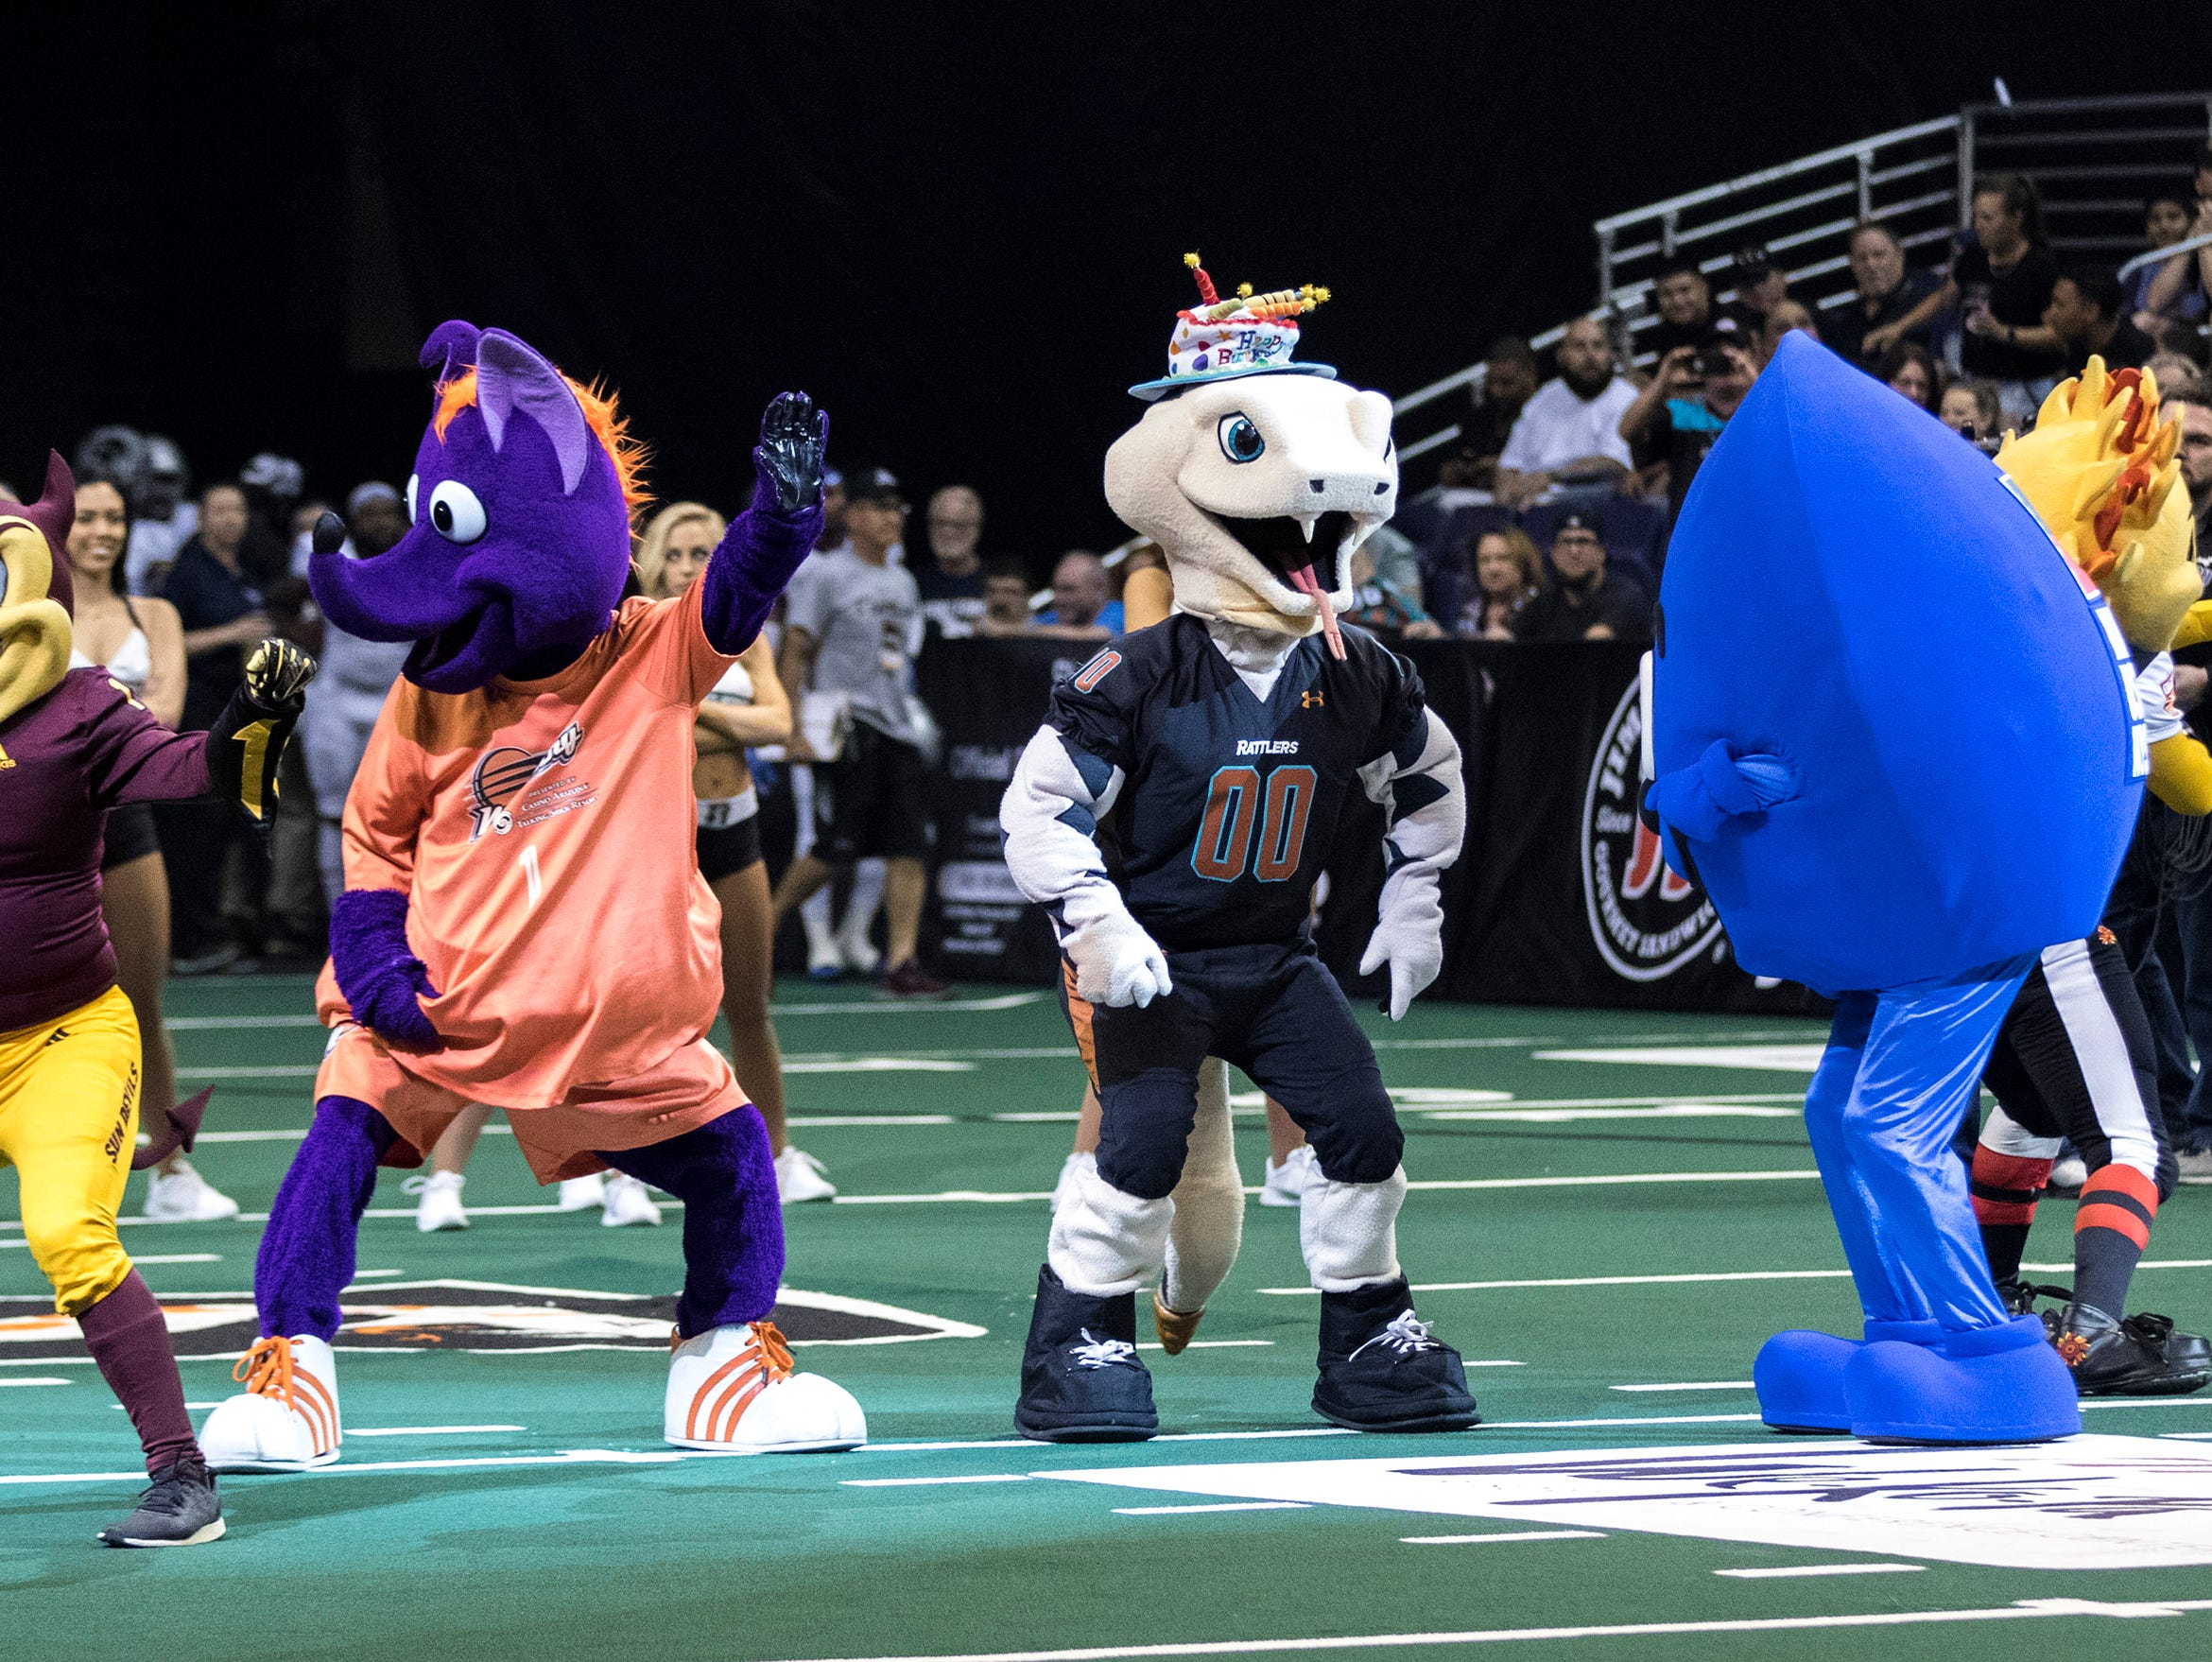 Mascots from around Arizona were on hand to celebrate the Rattlers' mascot Venom birthday during their game against San Diego Strike Force at Talking Stick Resort Arena in Phoenix Friday, April. 6, 2019.